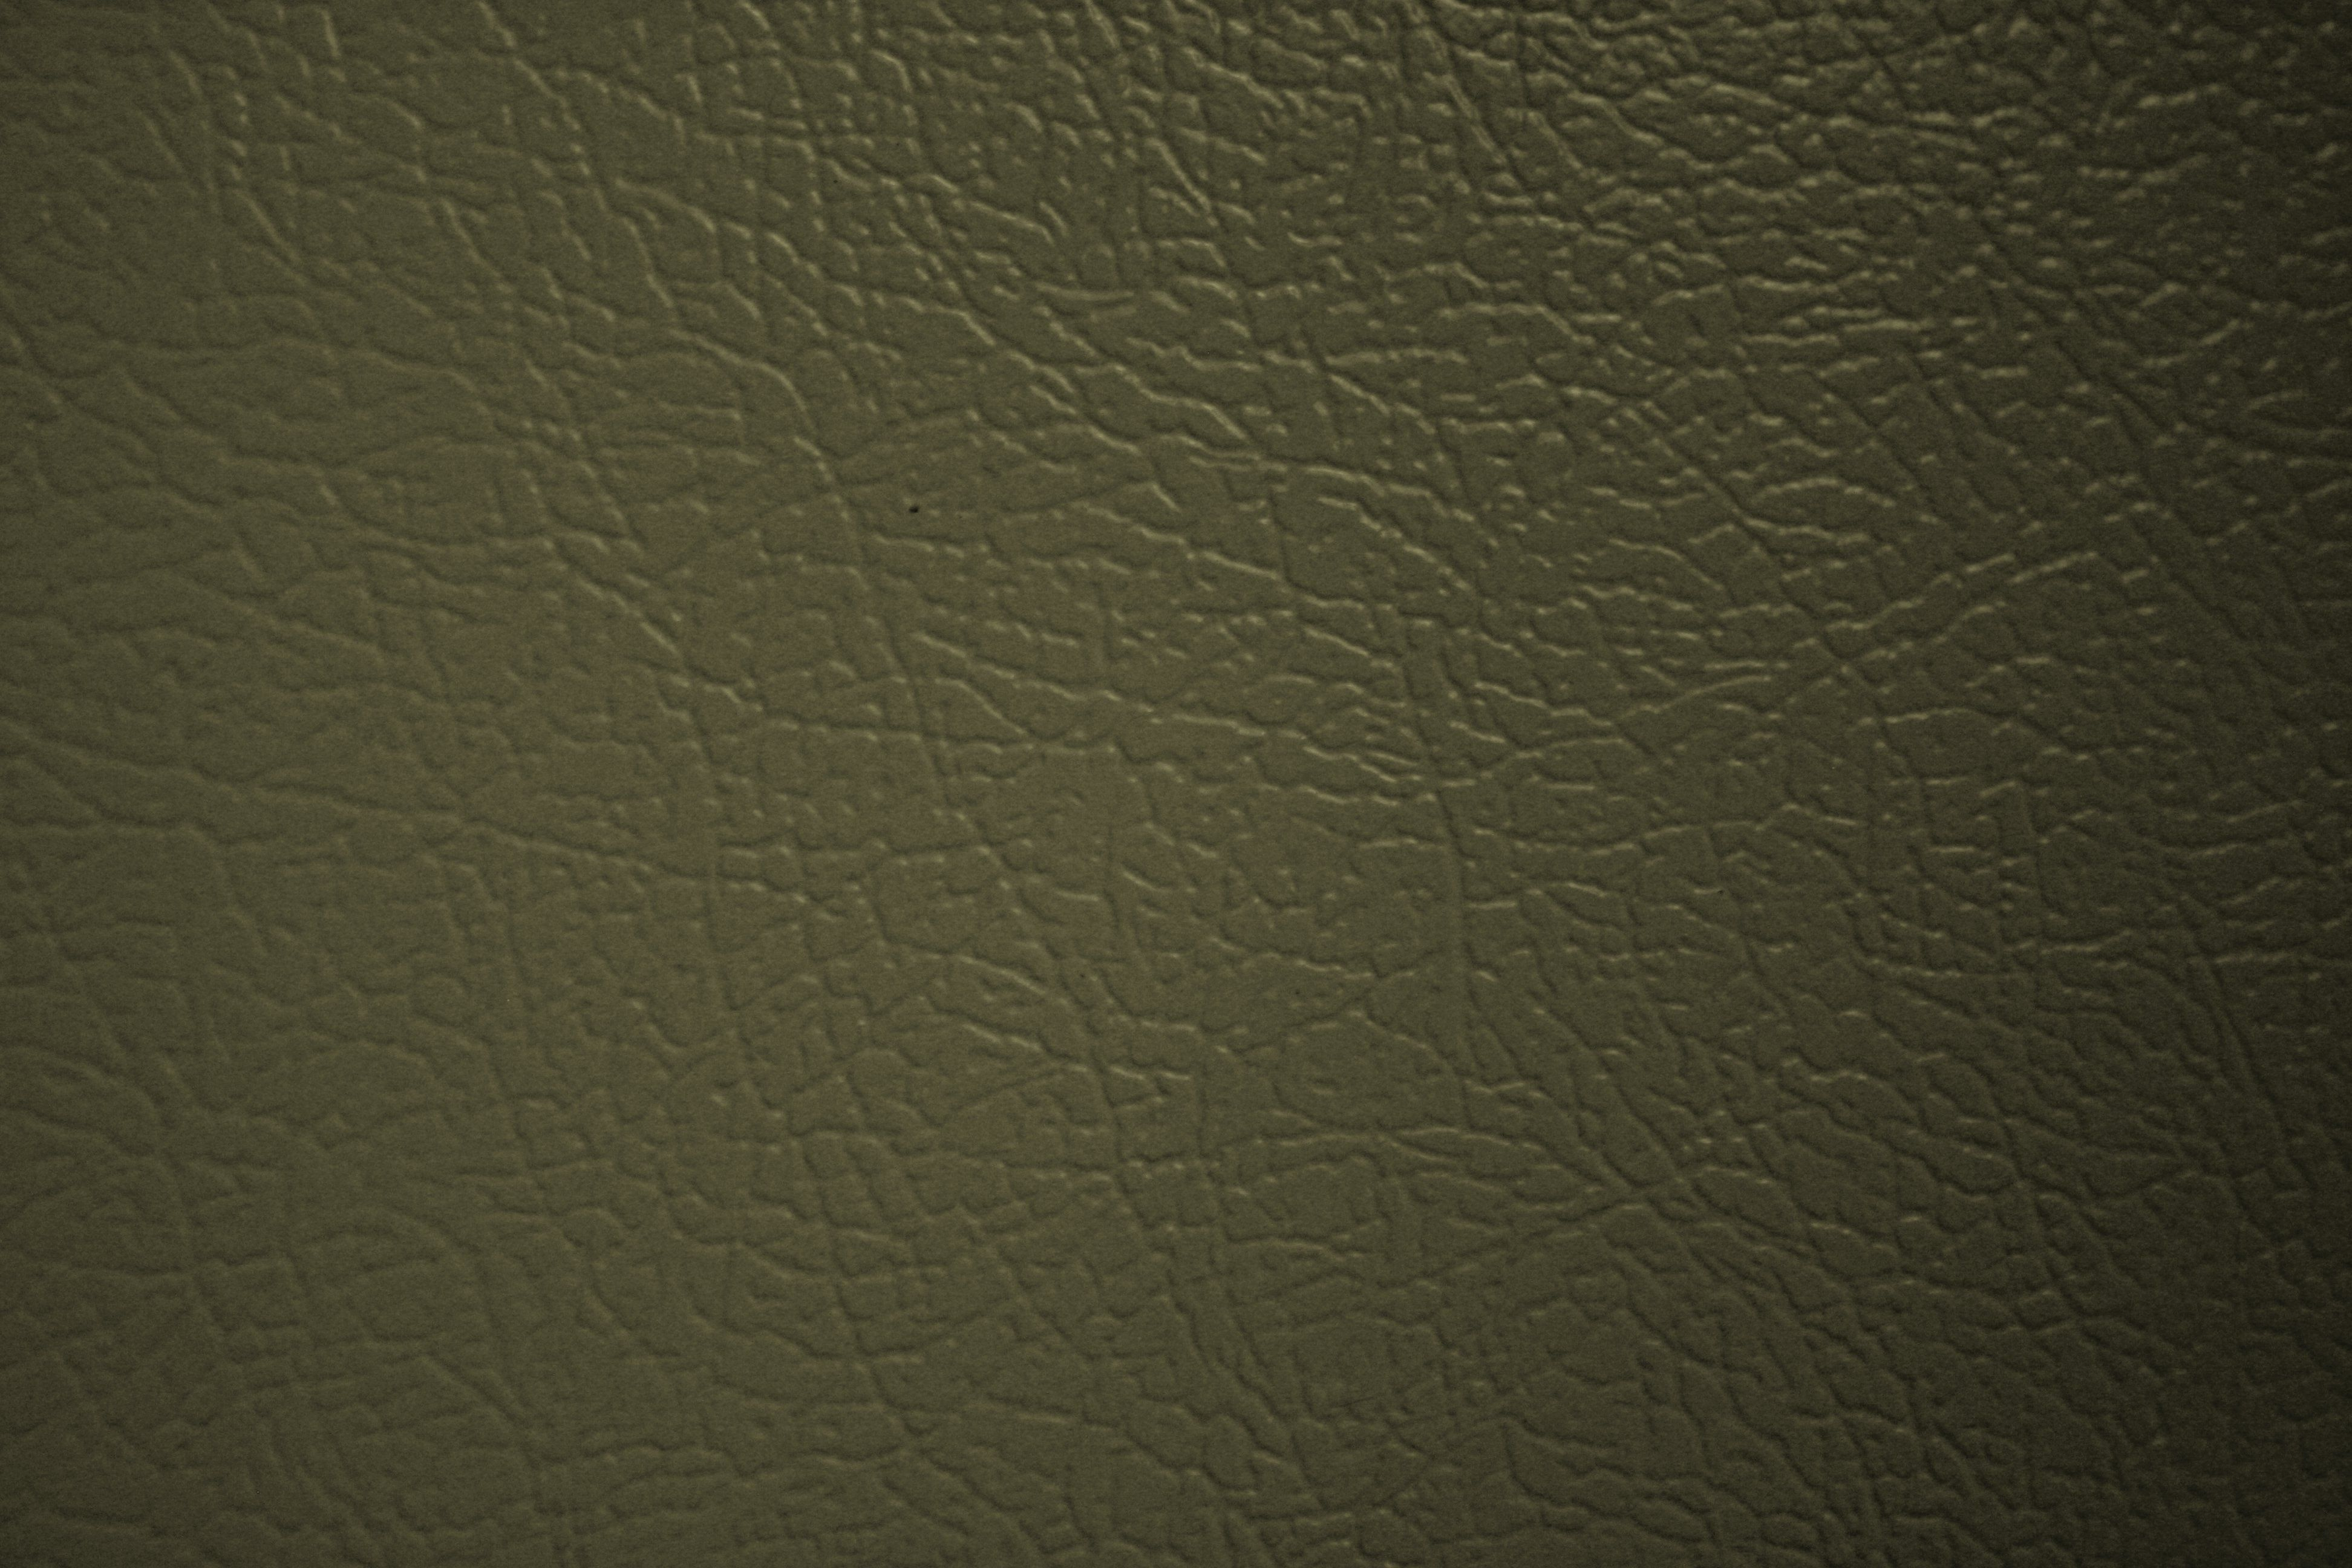 Leather Pictures Free Photographs Leather Texture Green Texture Free Photographs